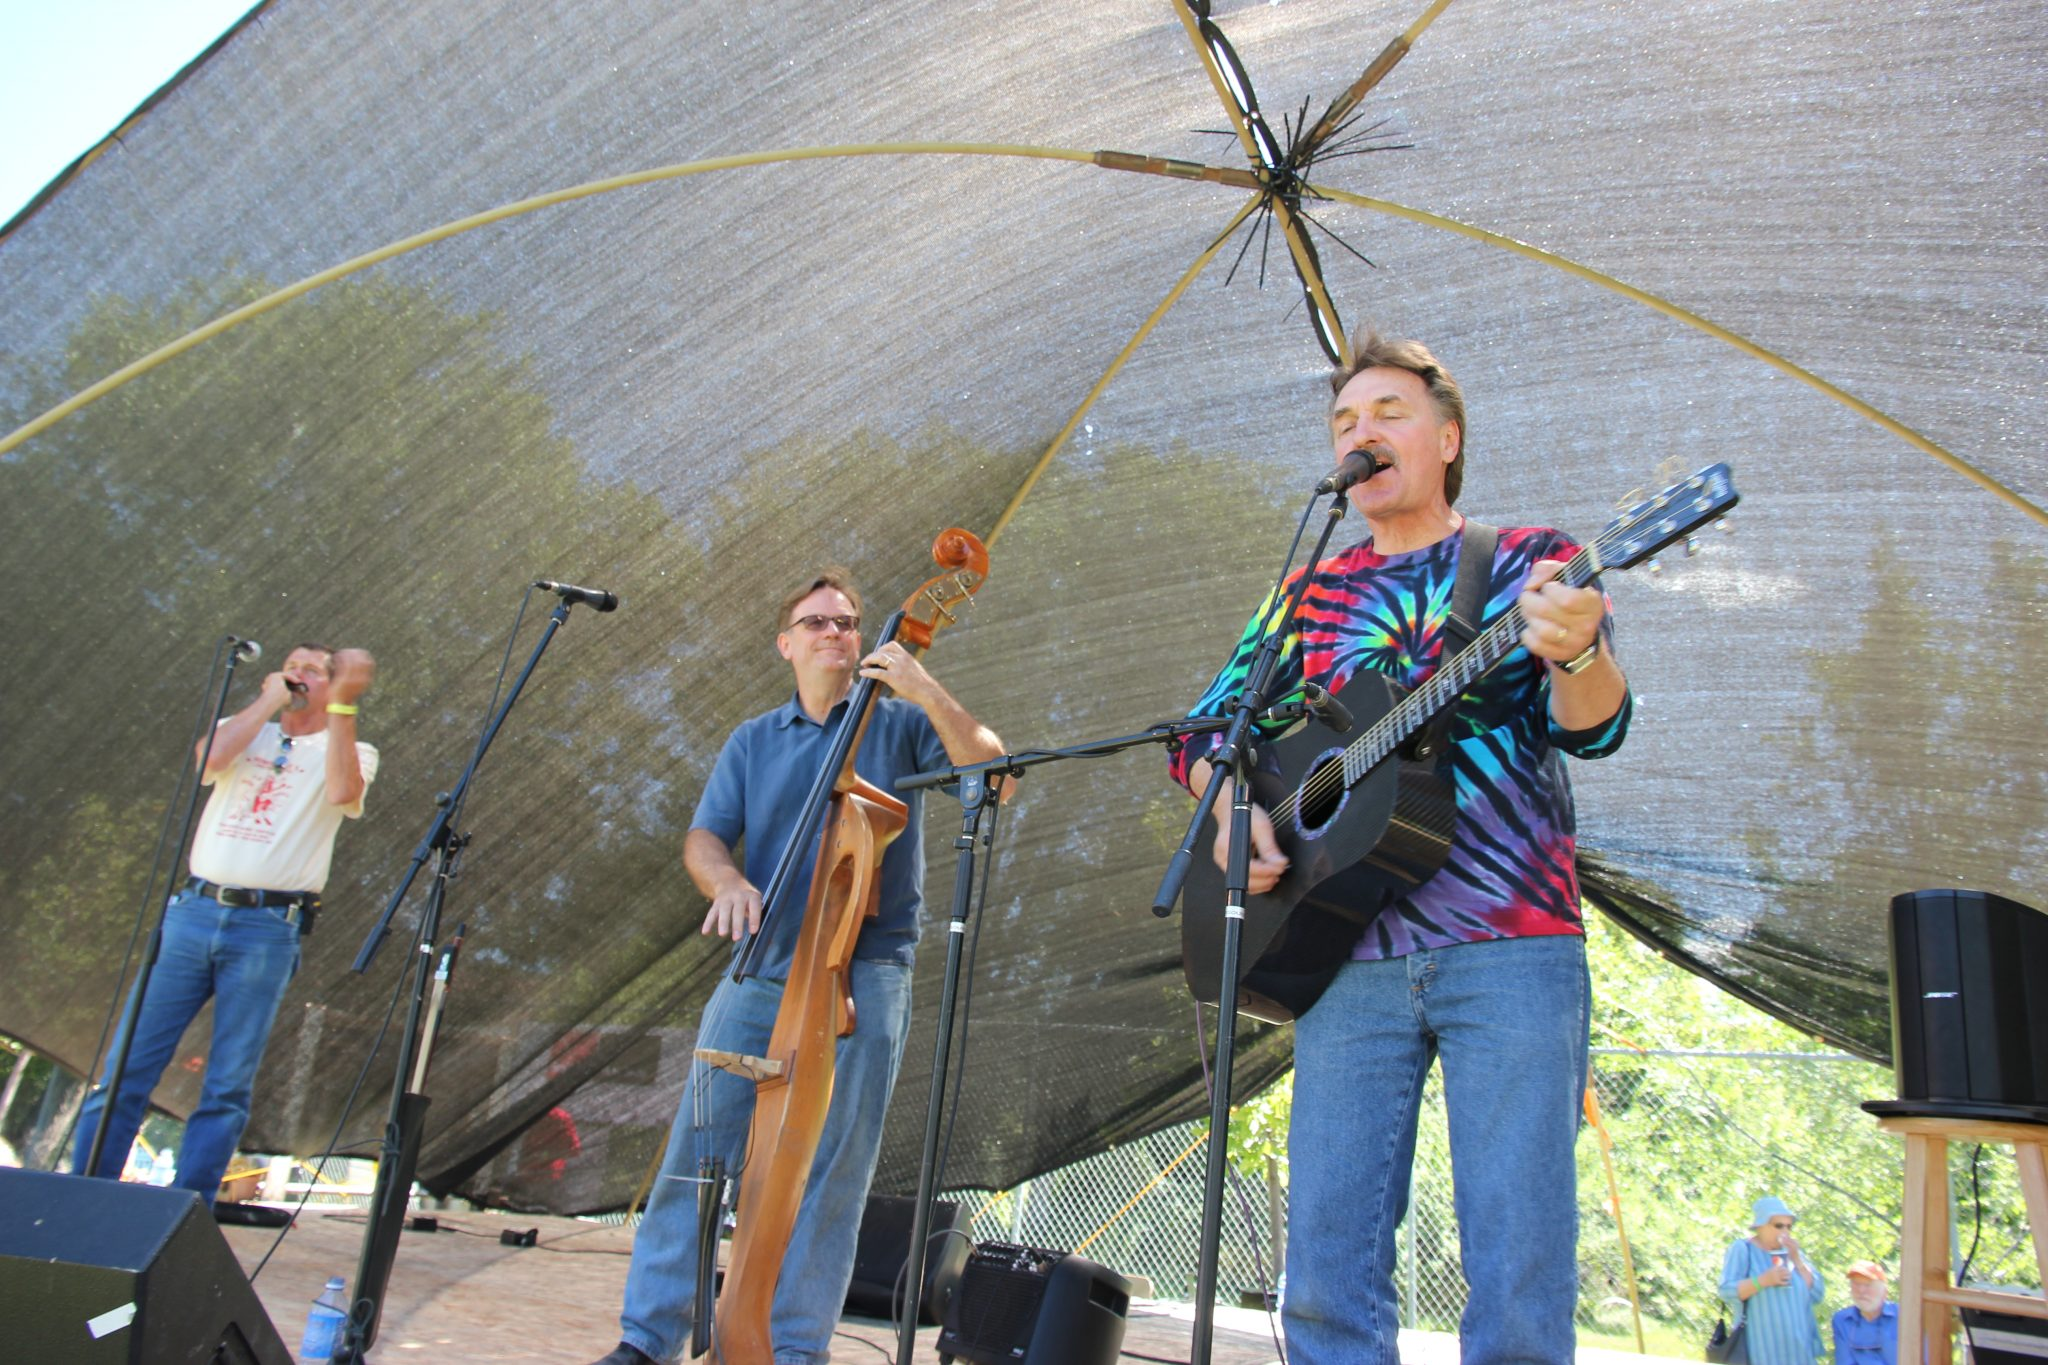 Ten Sleep, Wyoming's Nowoodstock Music Festival